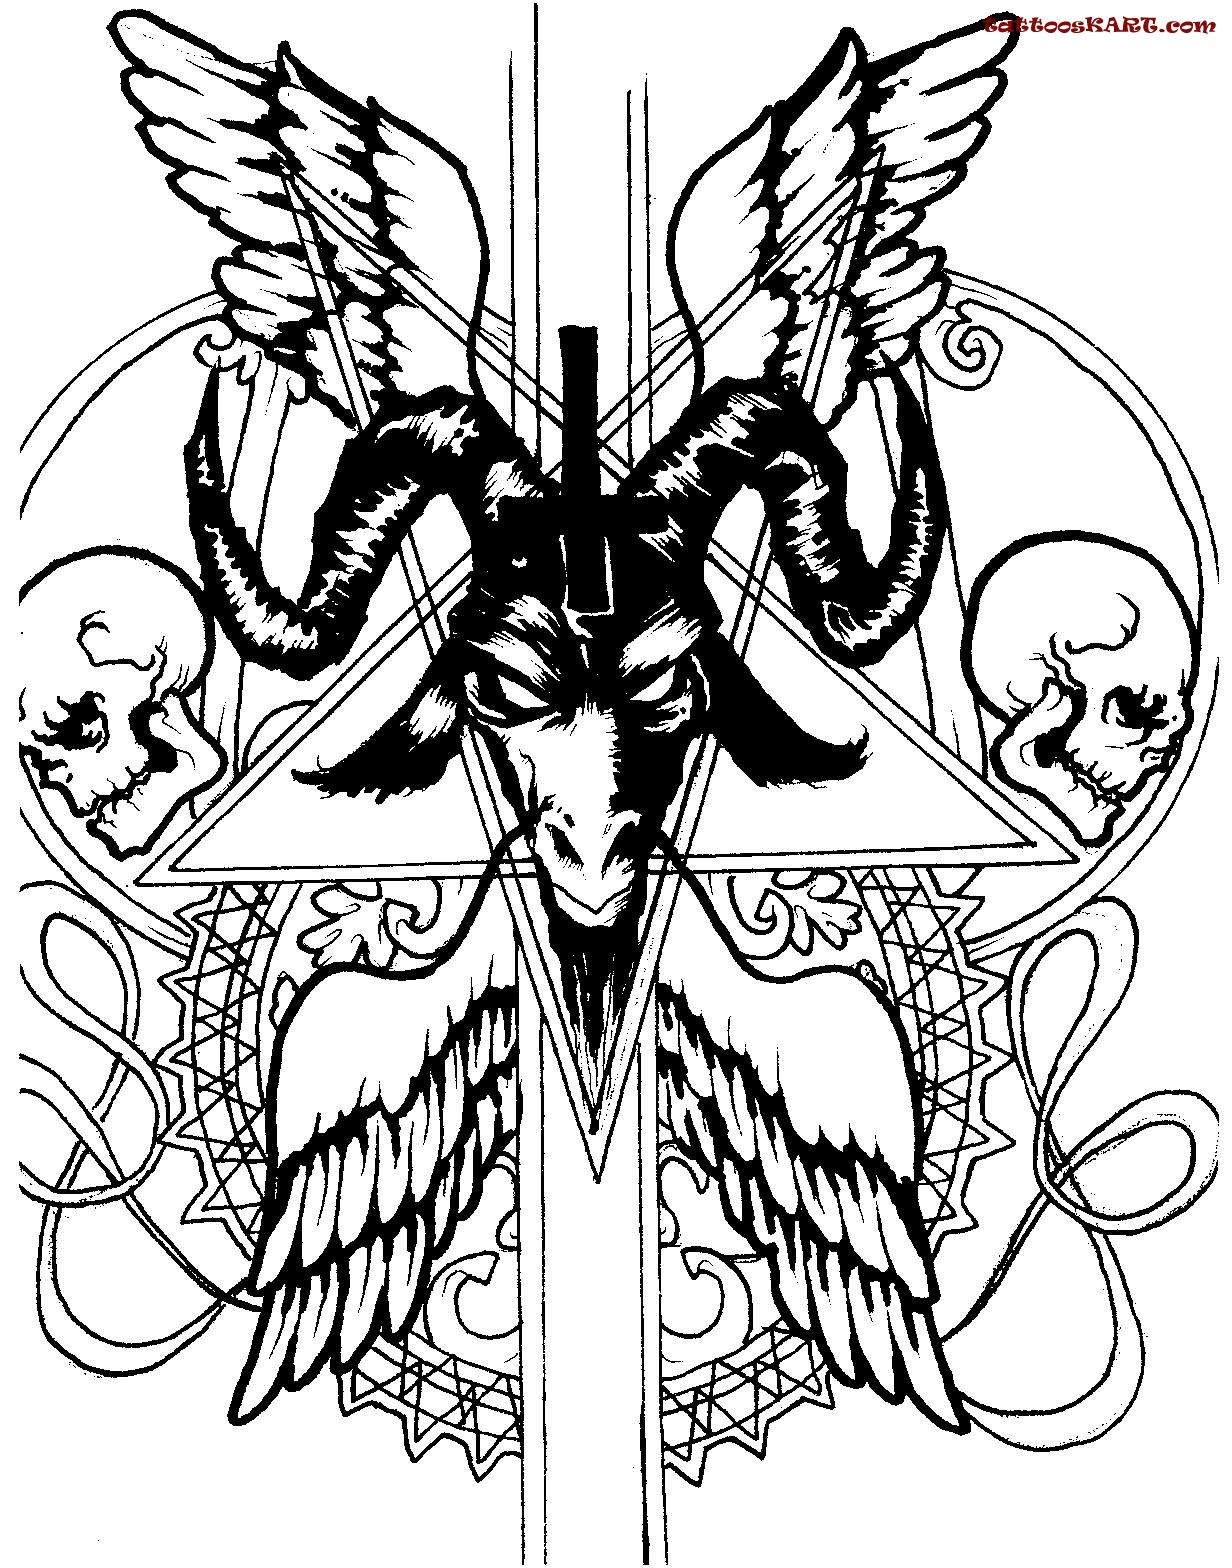 16 satan symbol tattoos amazing satan skulls tattoo design buycottarizona